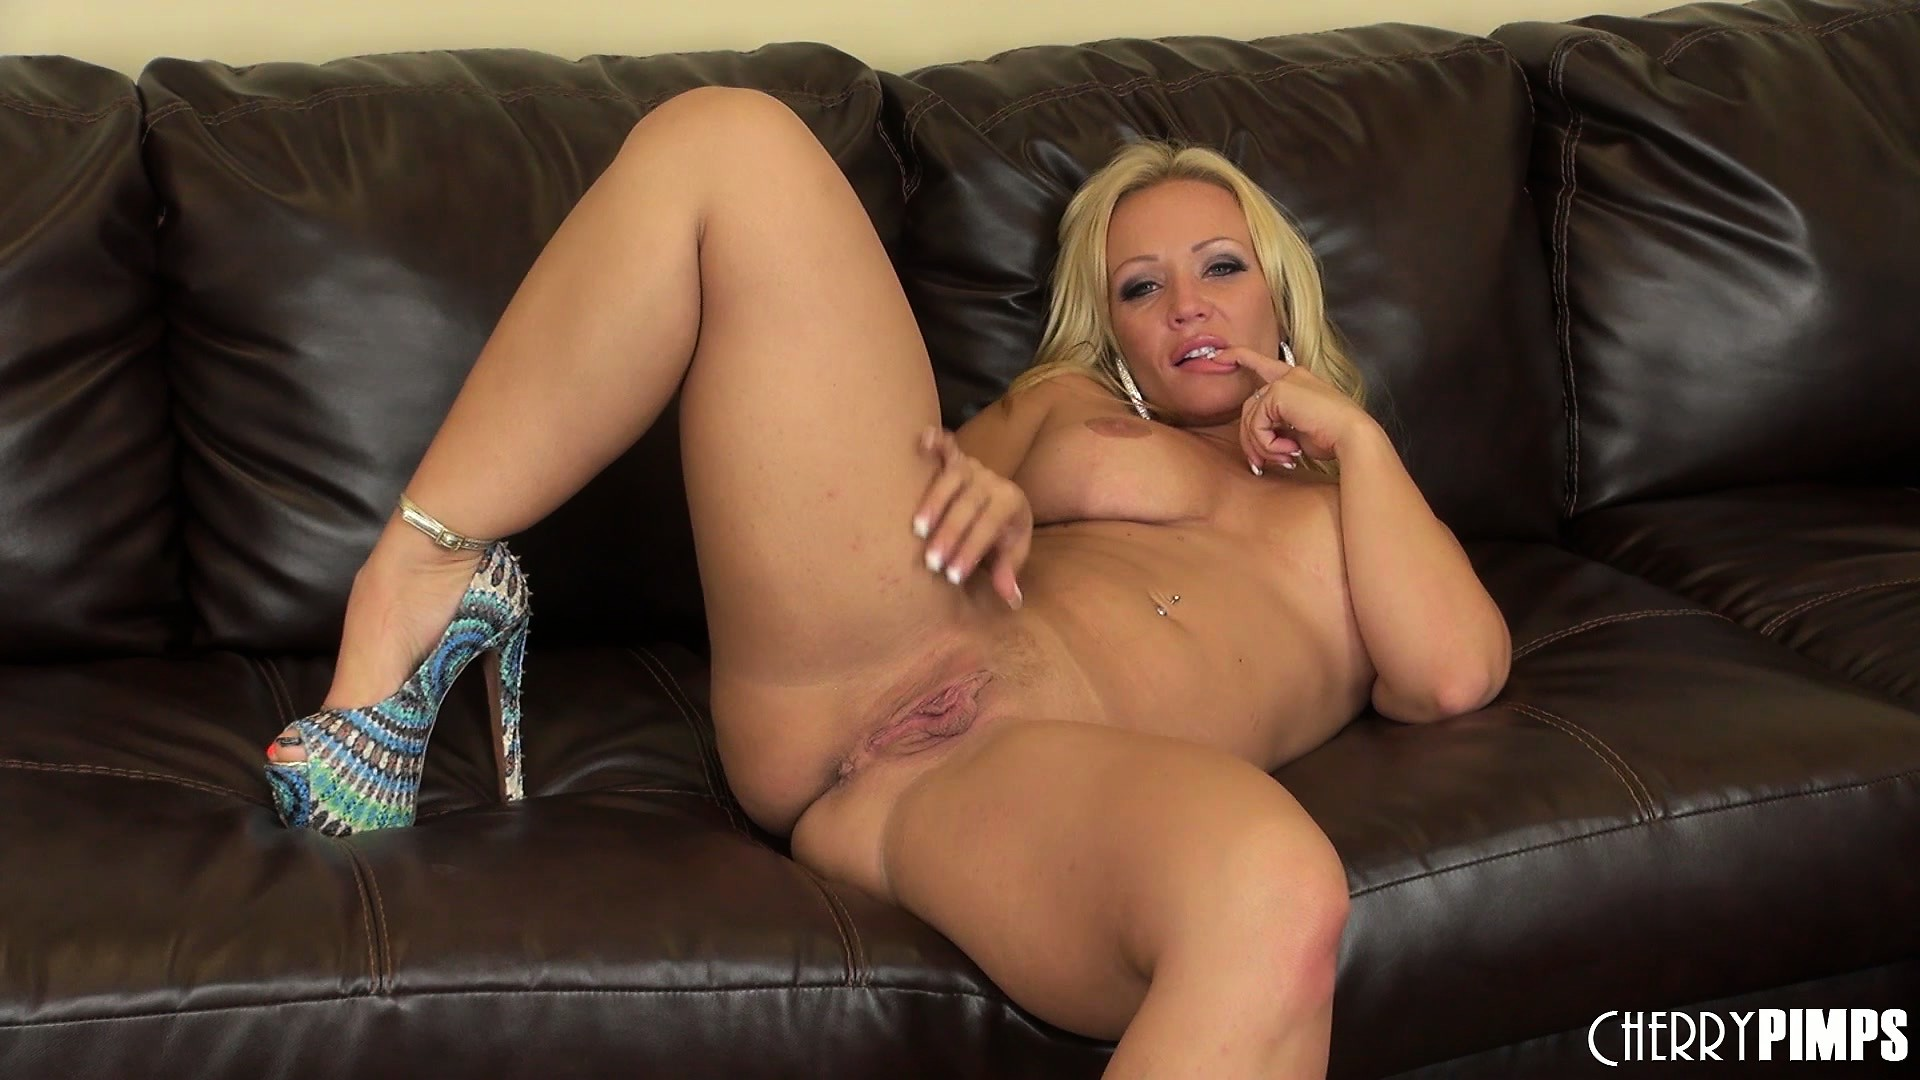 Porn Tube of Austin Taylor Is A Dazzling Blonde With Splendid Tits, A Divine Ass And A Wild Cunt